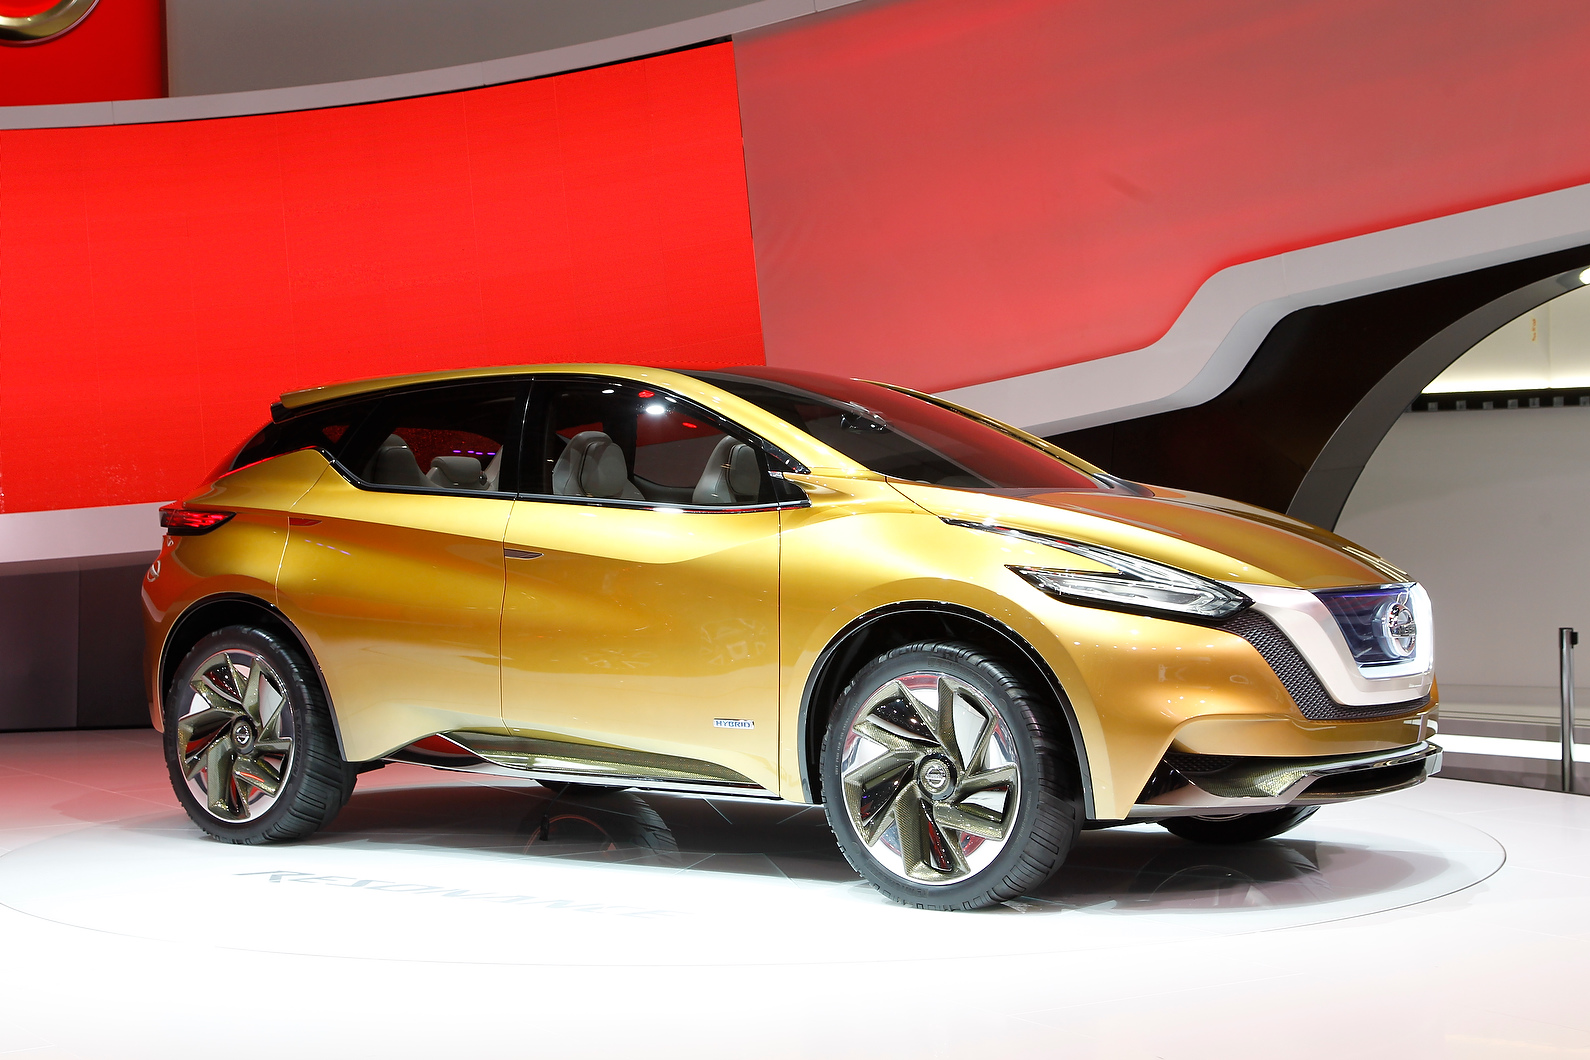 Nissan Resonance was first seen in Detroit; the concept points to the new Nissan Murano.